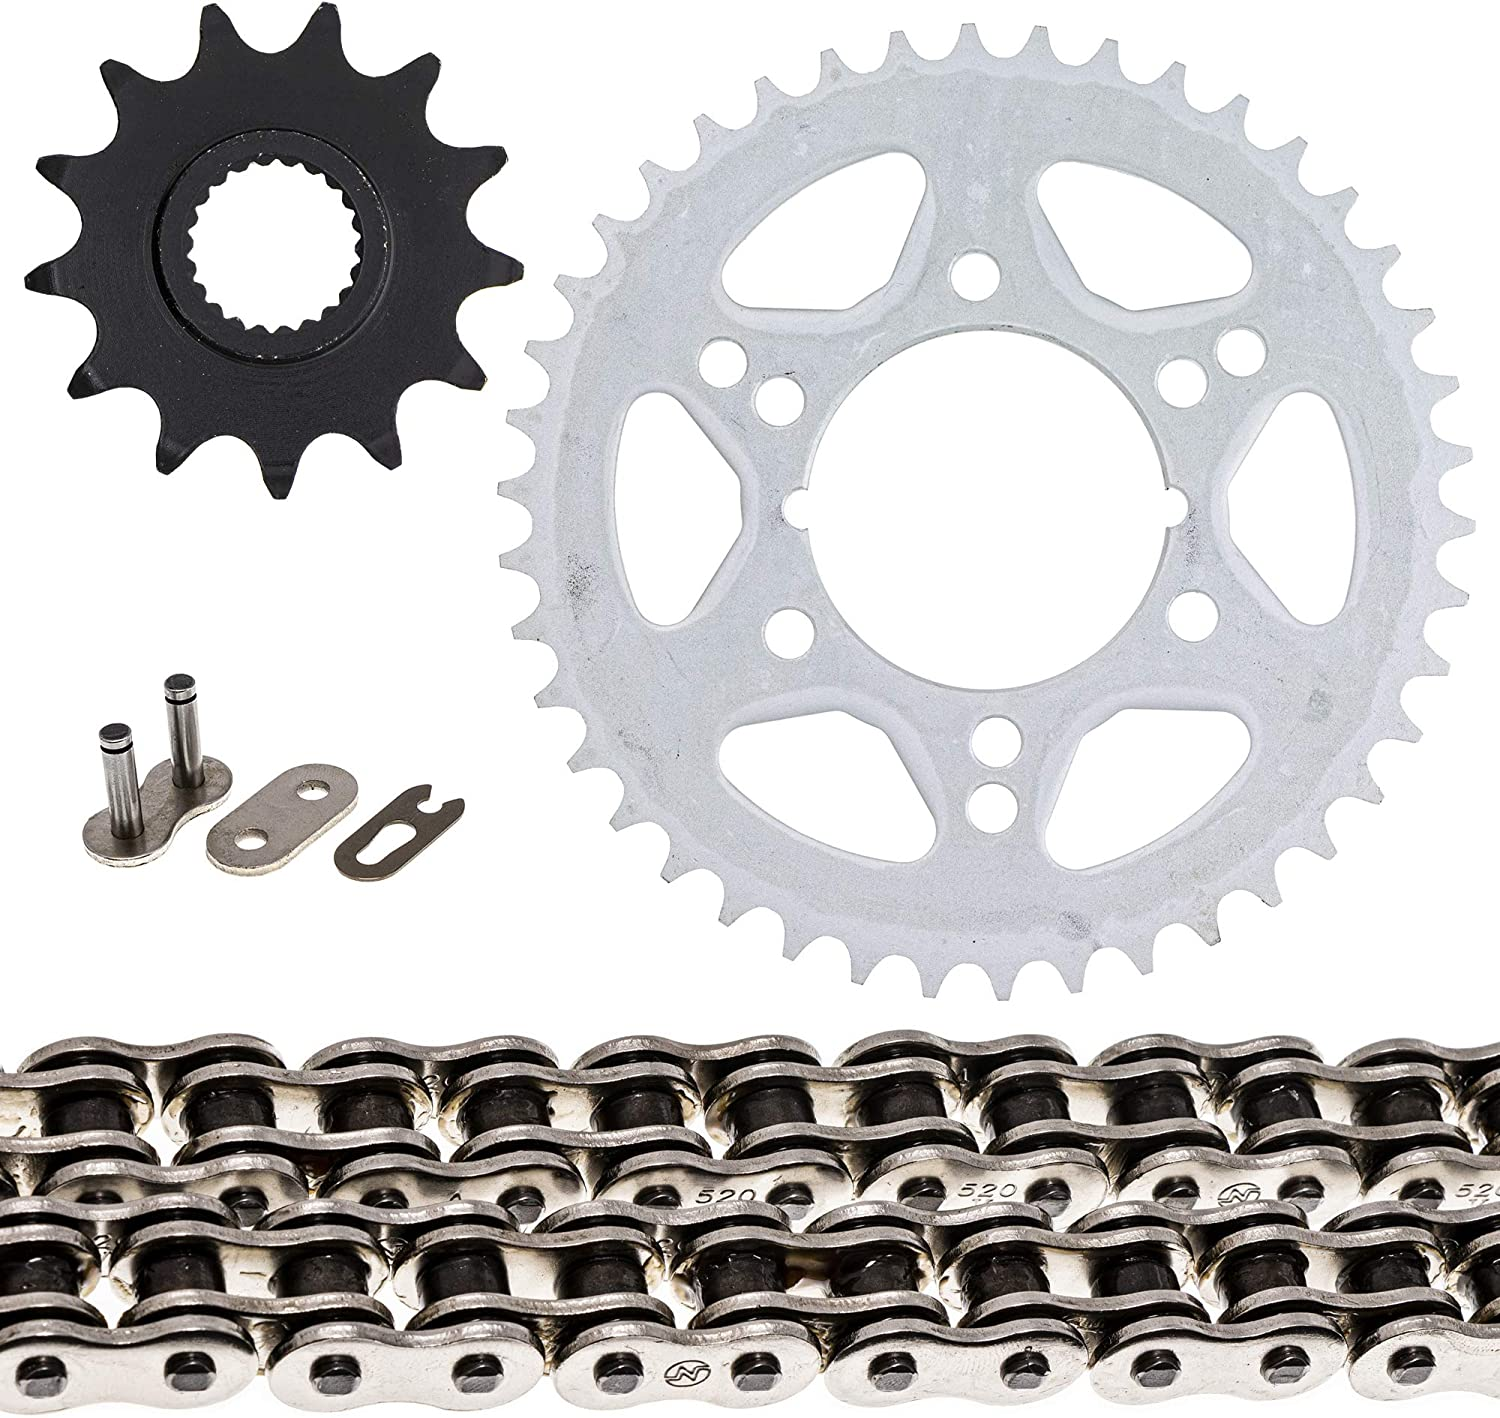 NICHE Drive Sprocket Chain Combo for Polaris Trail Boss 250 Scrambler 250 Front 13 Rear 42 Tooth 520V O-Ring 74 Links